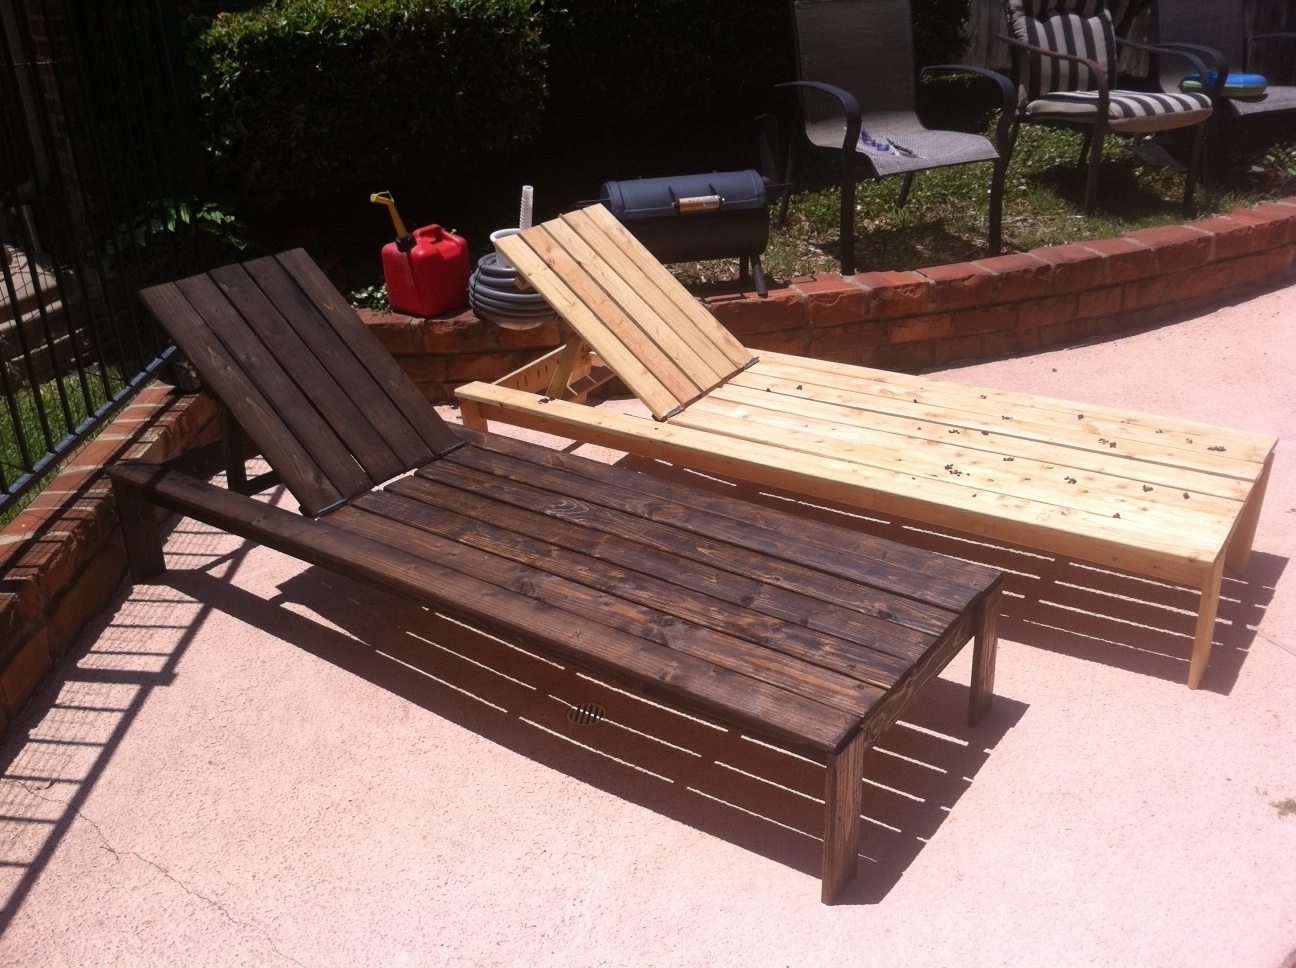 Preferred Diy Pool Chaise Lounge Chairs — Bed And Shower : Decorating Pool Intended For Diy Outdoor Chaise Lounge Chairs (View 2 of 15)